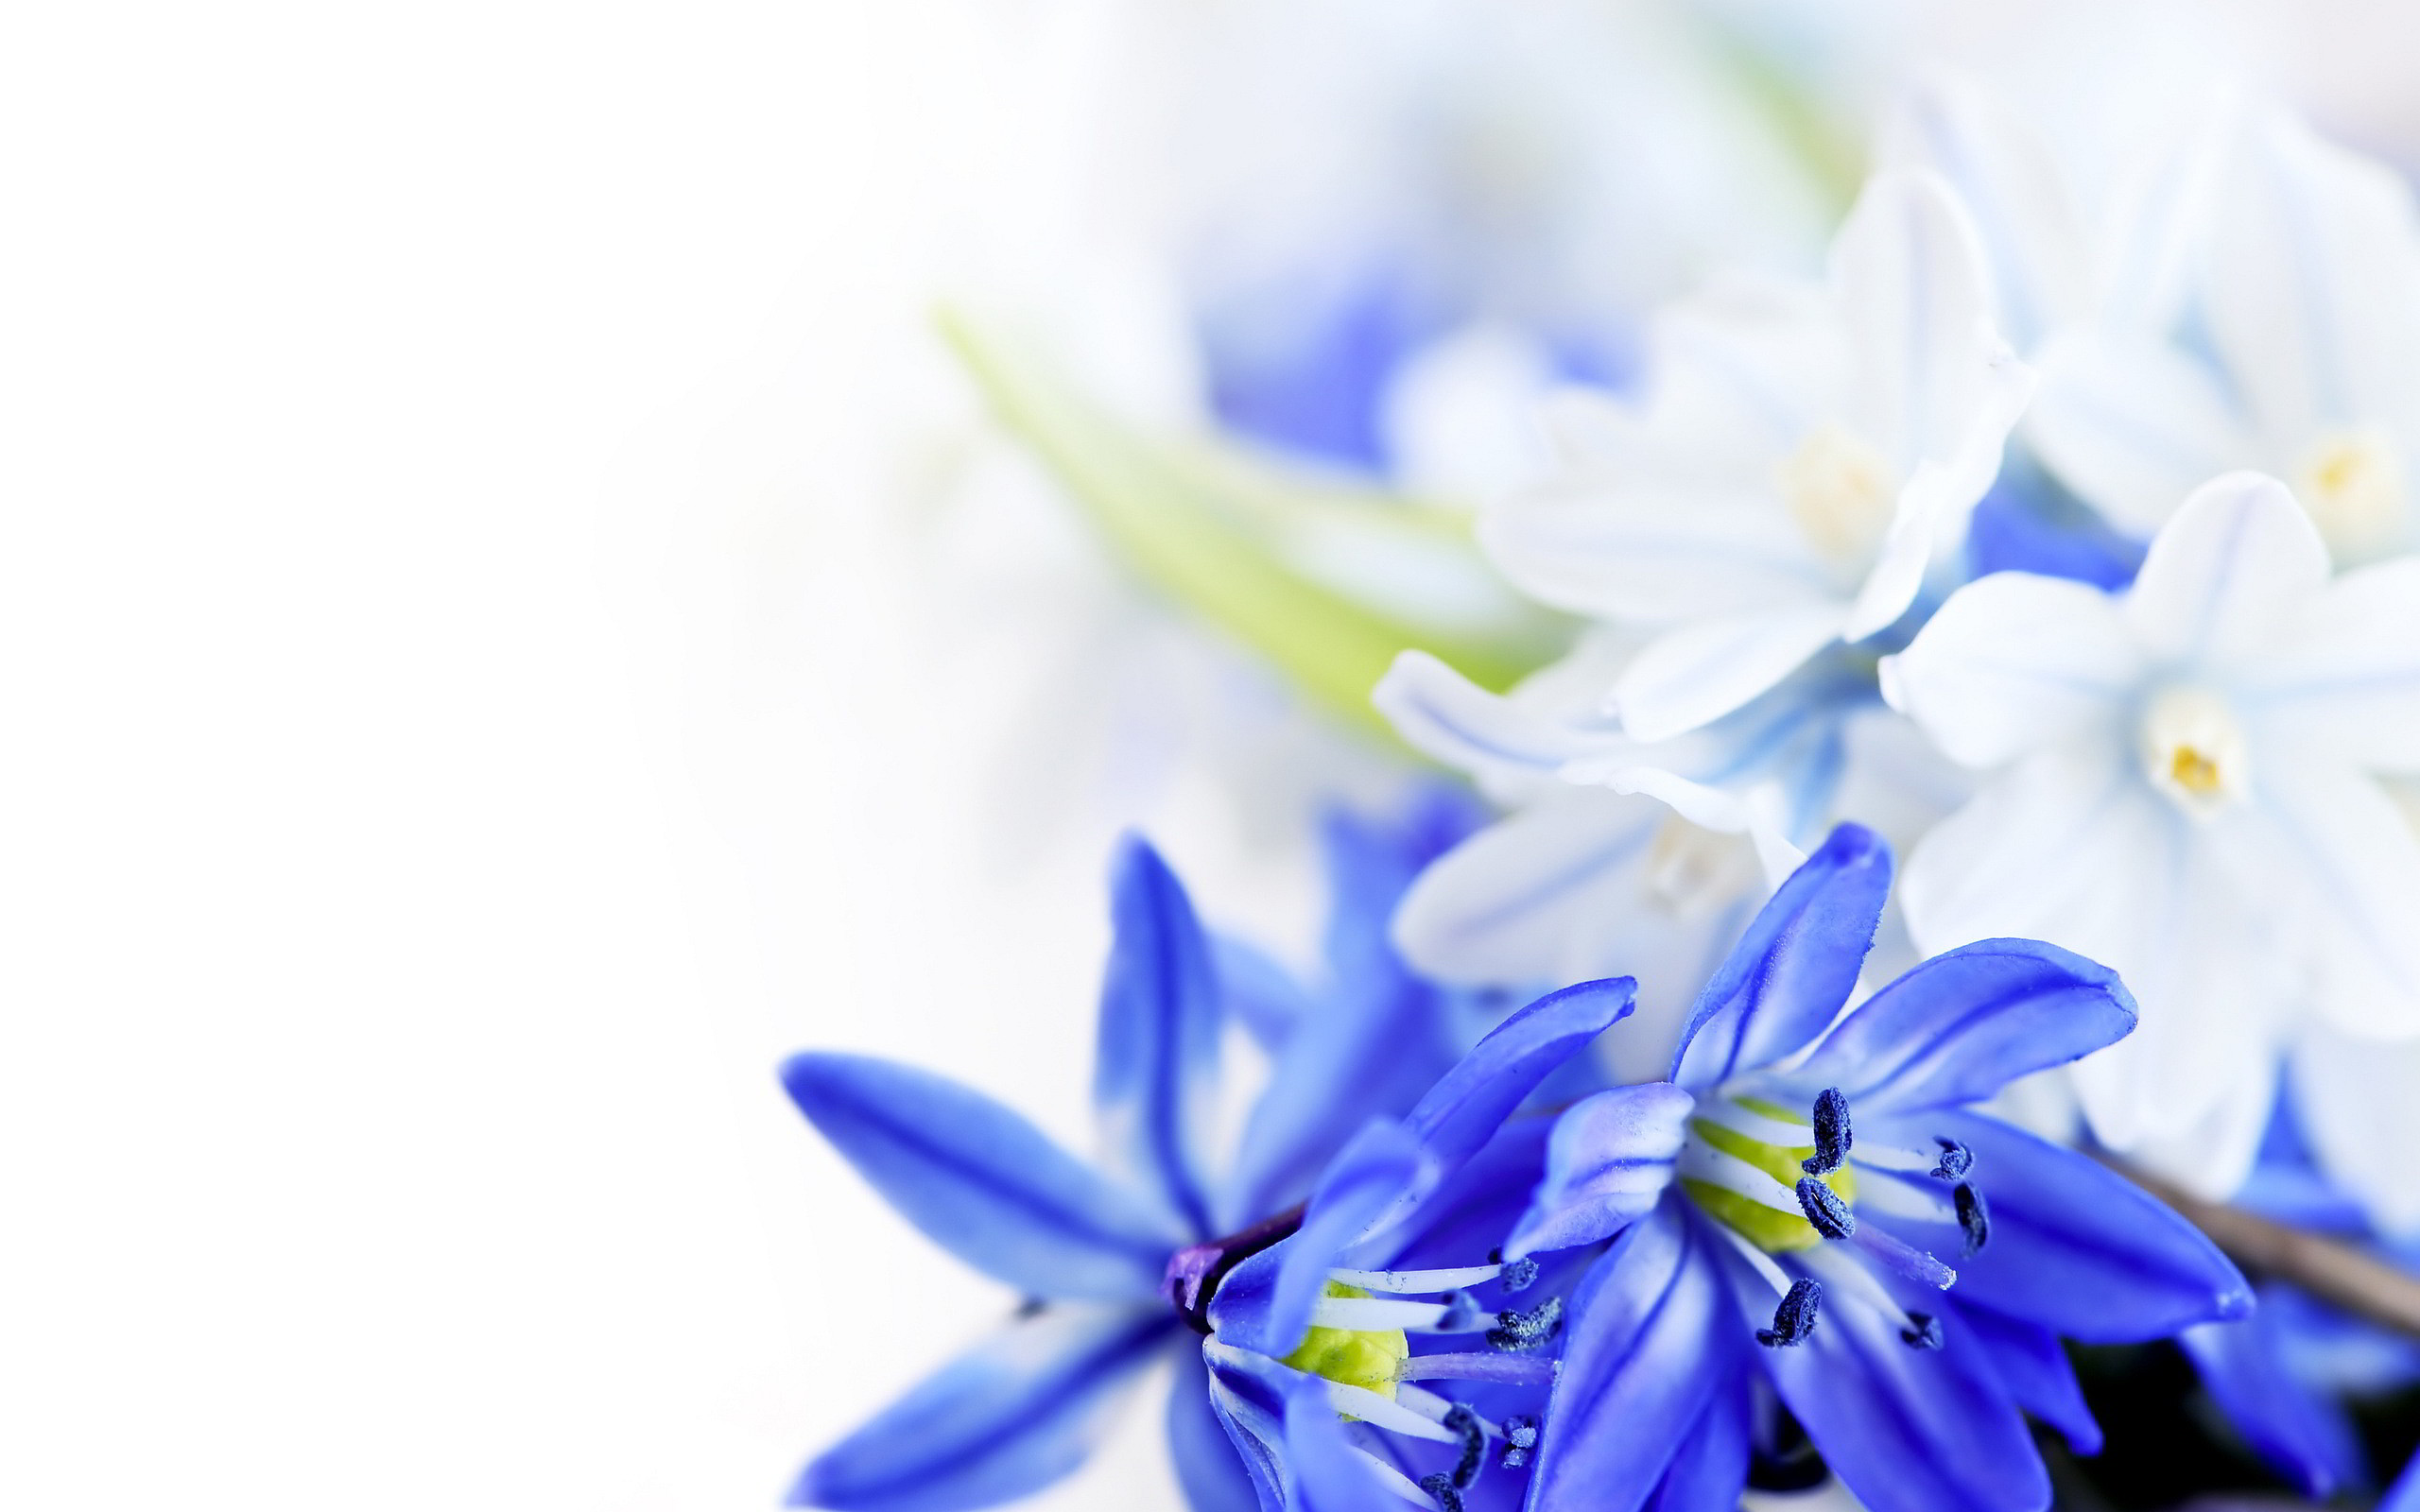 2560x1600 blue flowers background download. Â«Â«